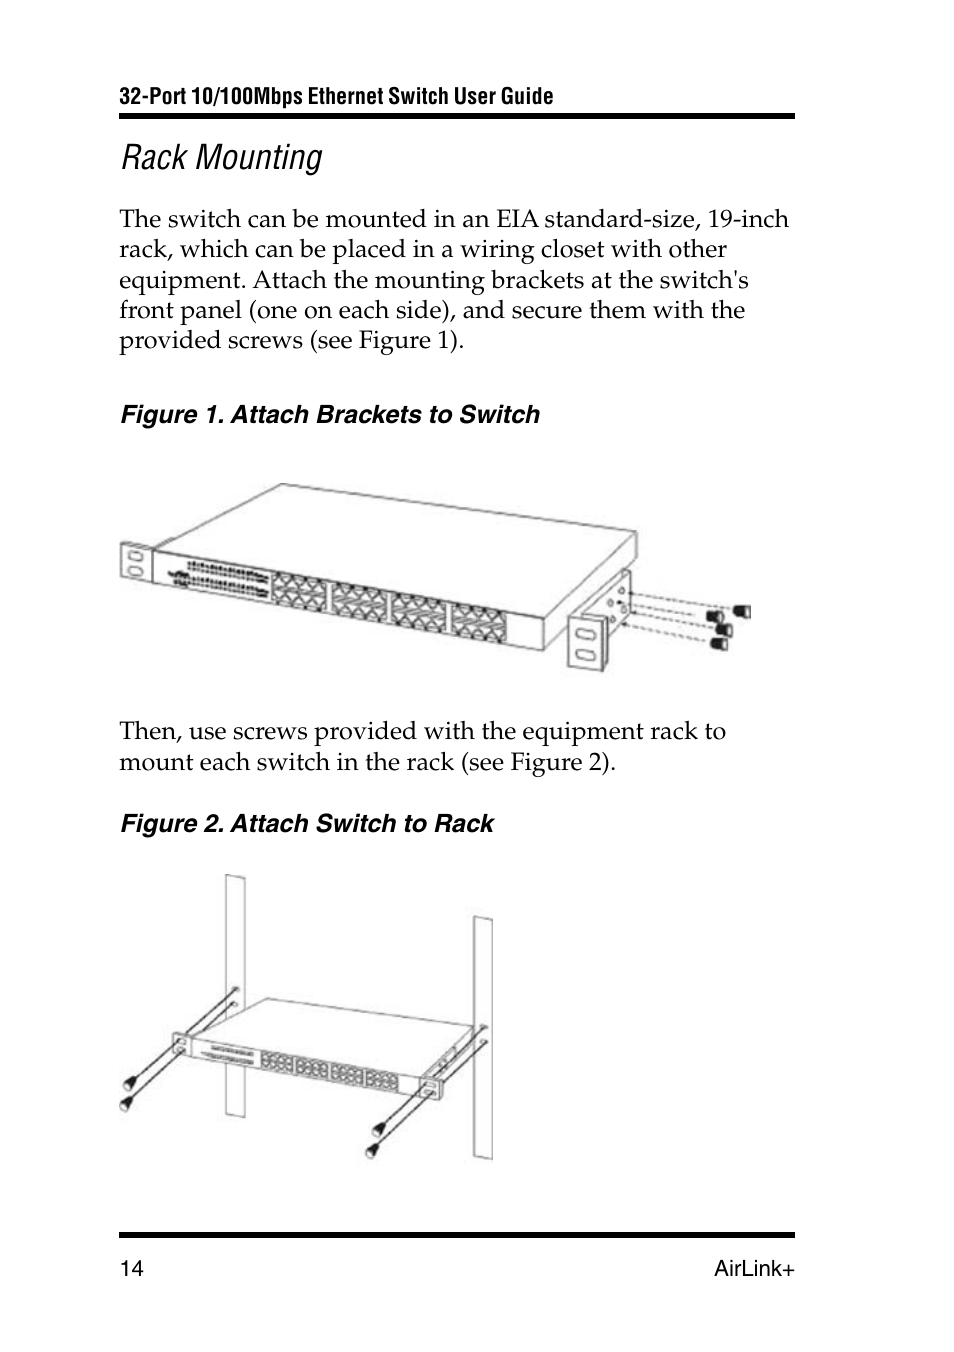 Rack Mounting Airlink Ug Asw232 1103 User Manual Page 14 24 Wiring Closet Equipment